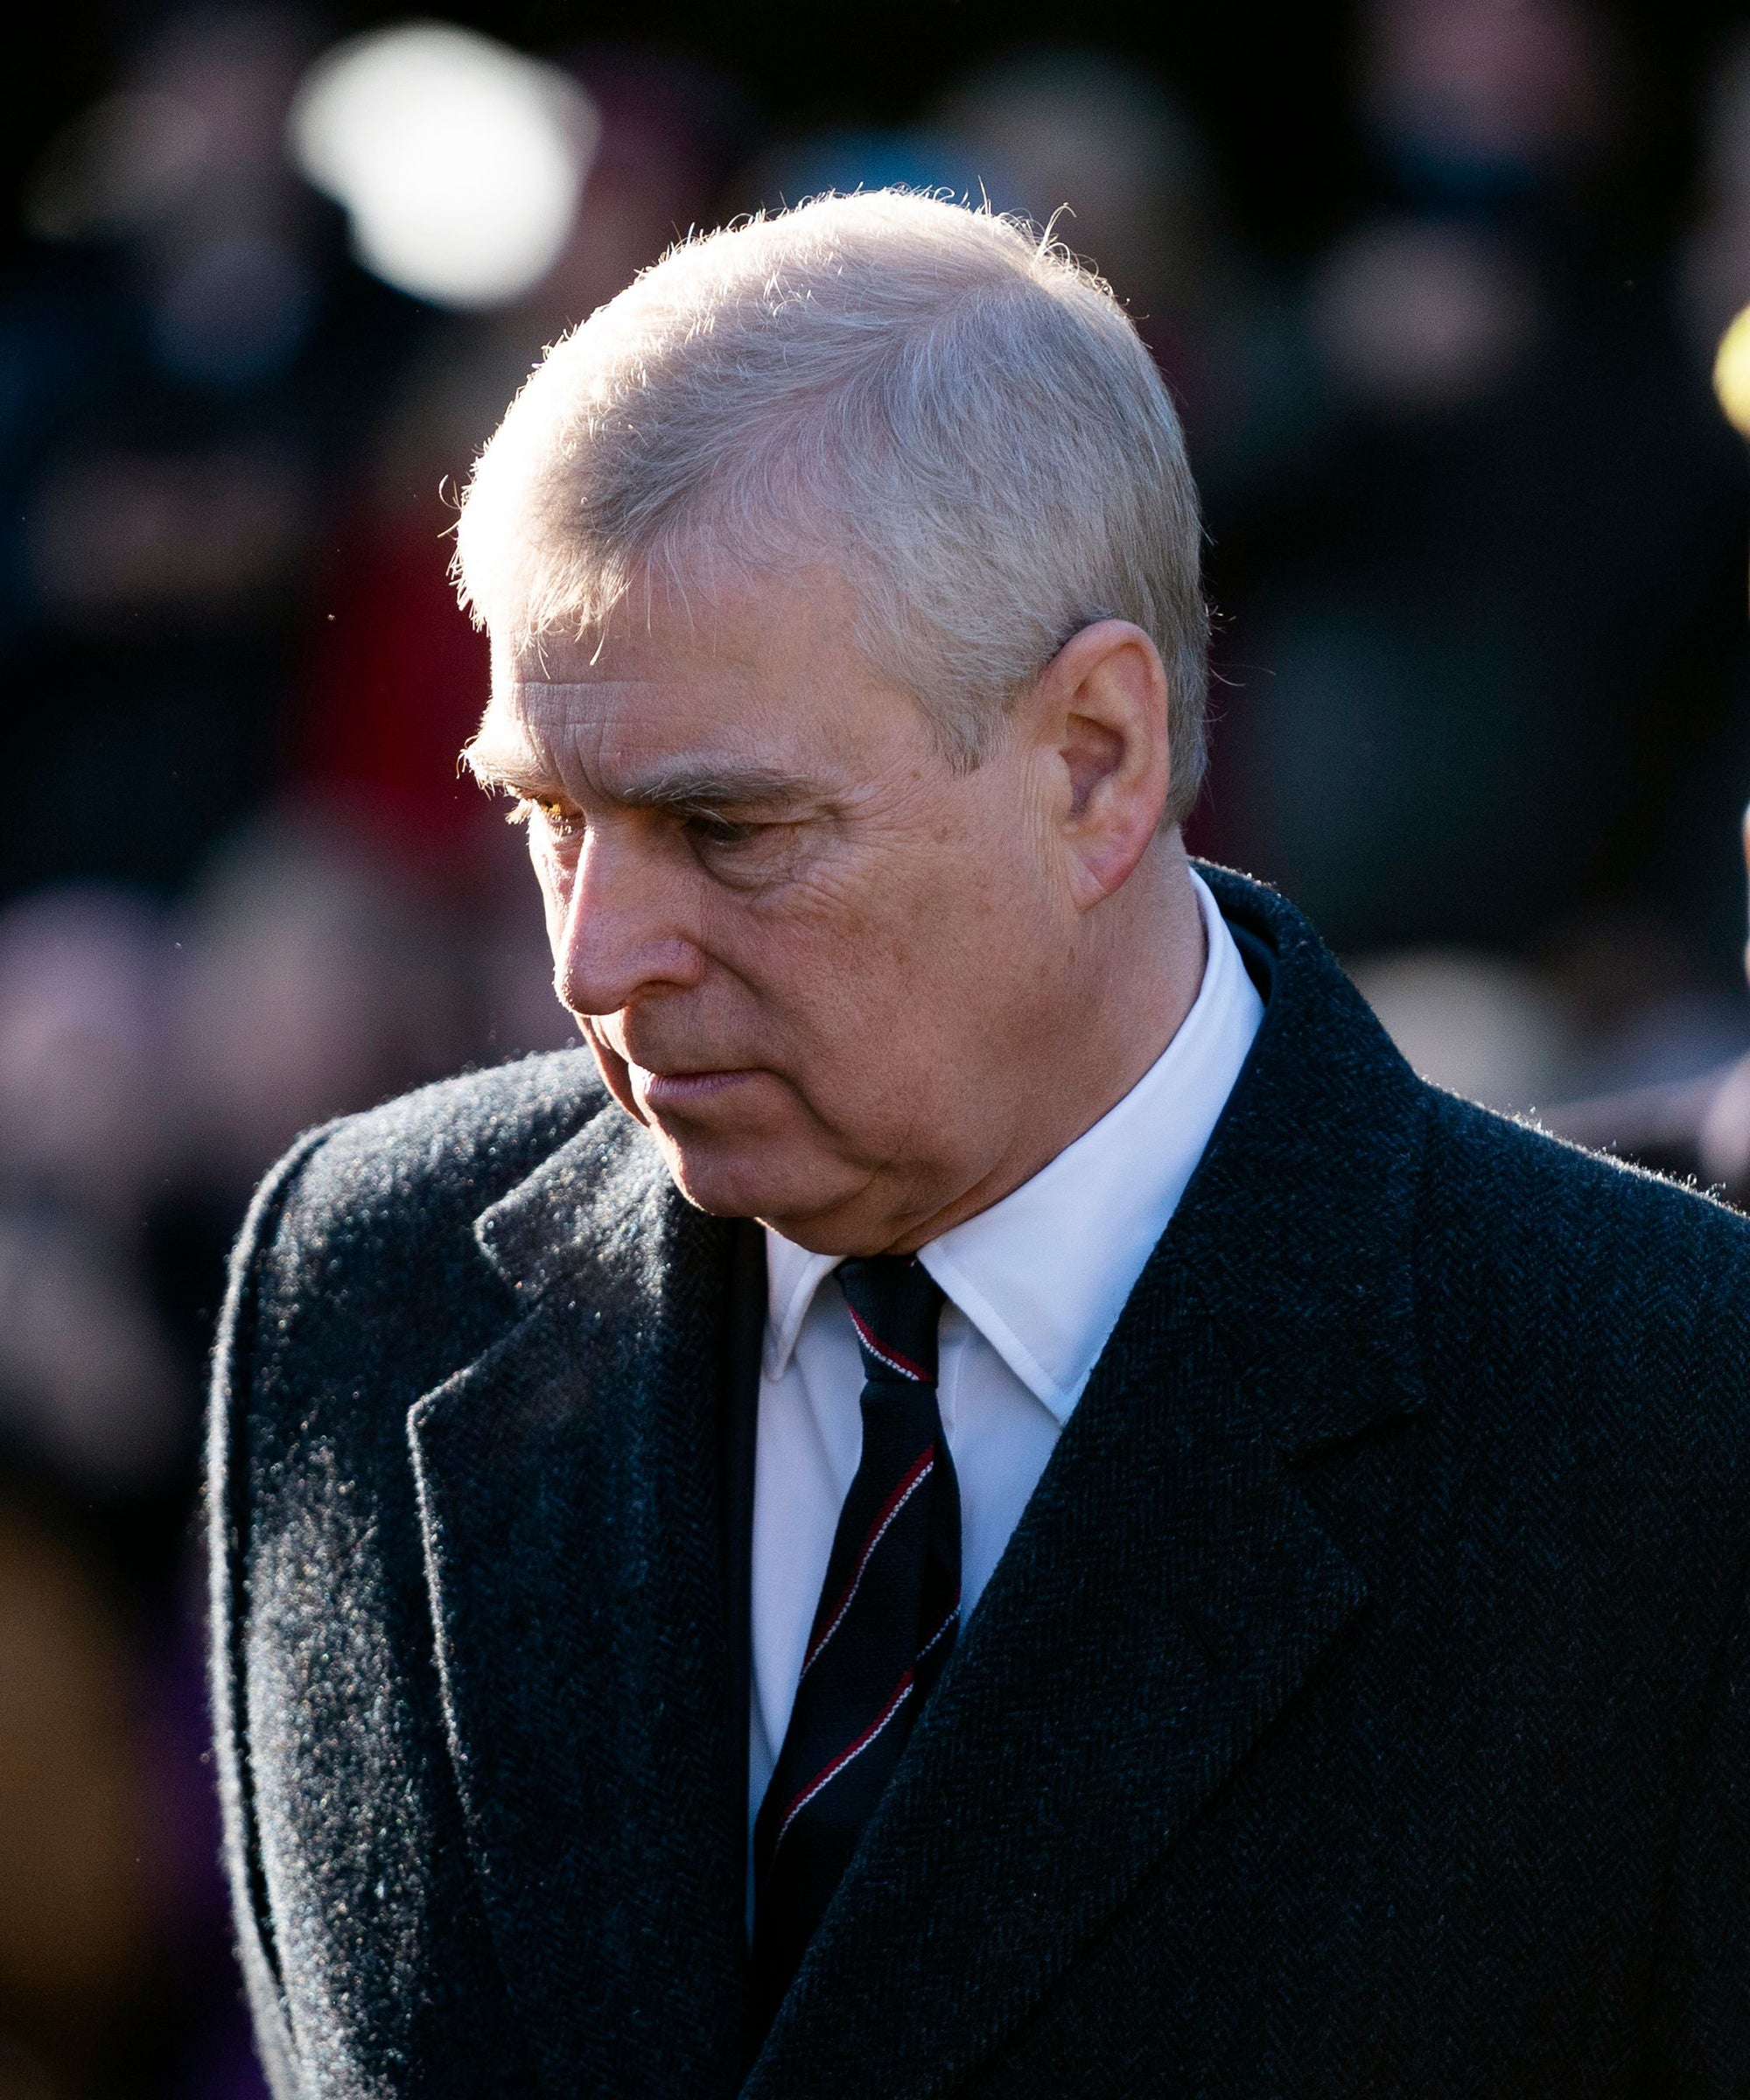 Prince Andrew Refuses To Cooperate In The Jeffrey Epstein Investigation